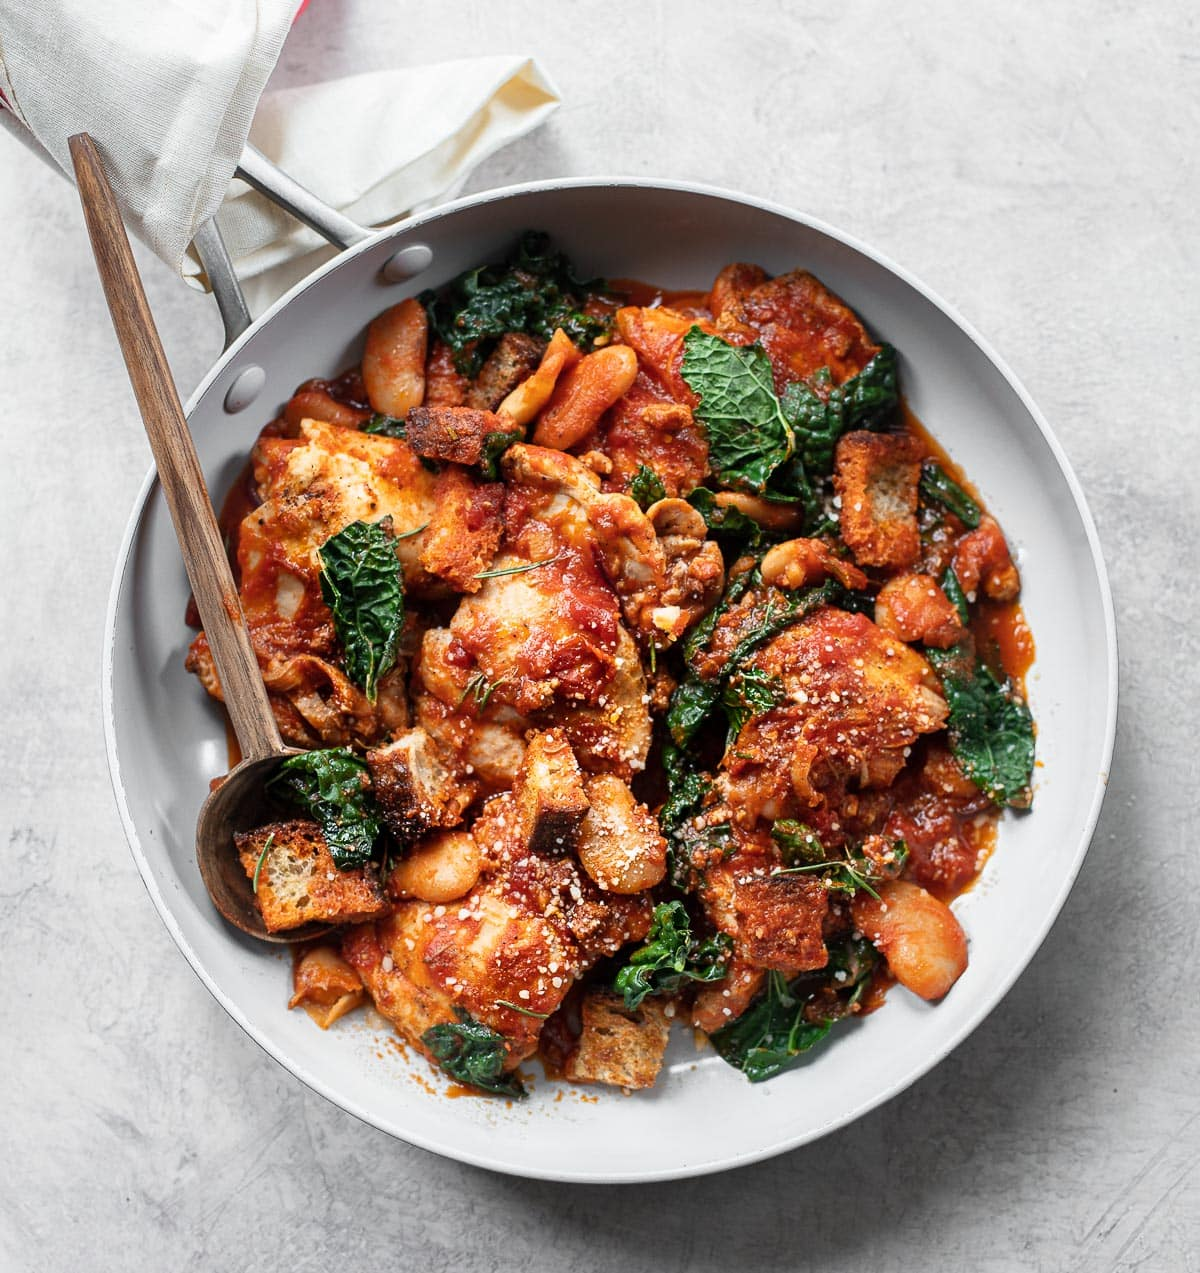 A skillet recipe for boneless chicken thighs in tomato sauce with kale, white beans and sourdough bread.